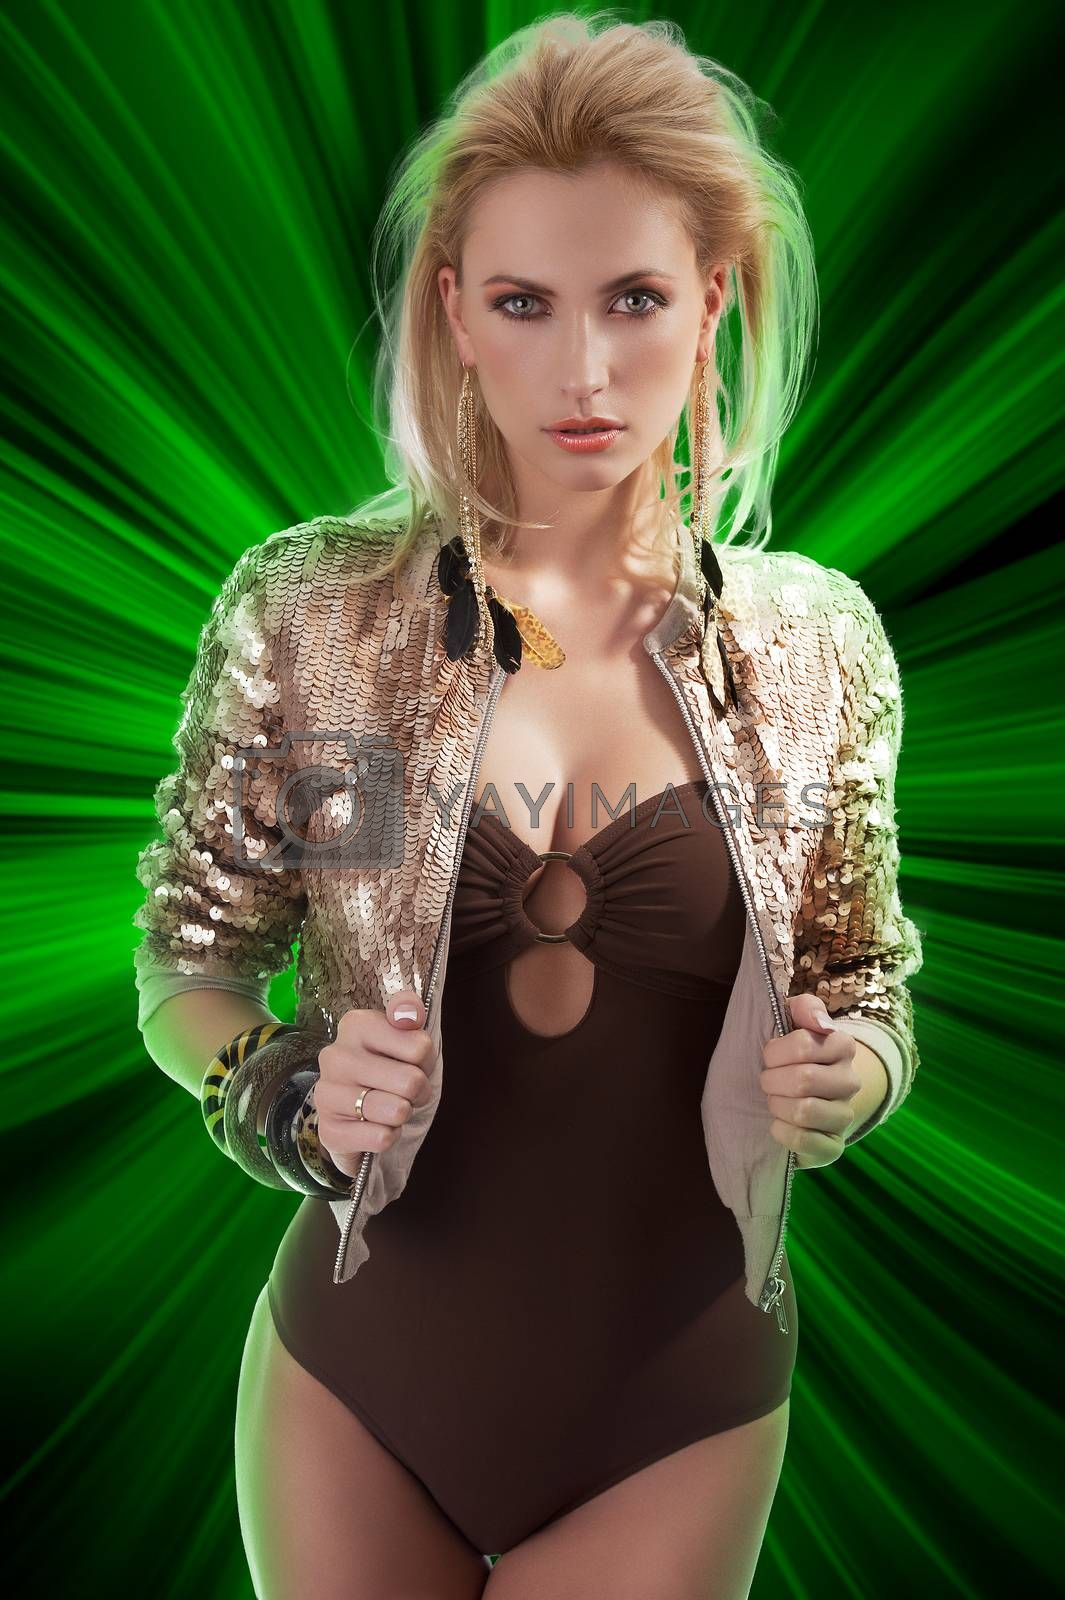 Royalty free image of fashion girl with shining sequins jacket by fotoCD